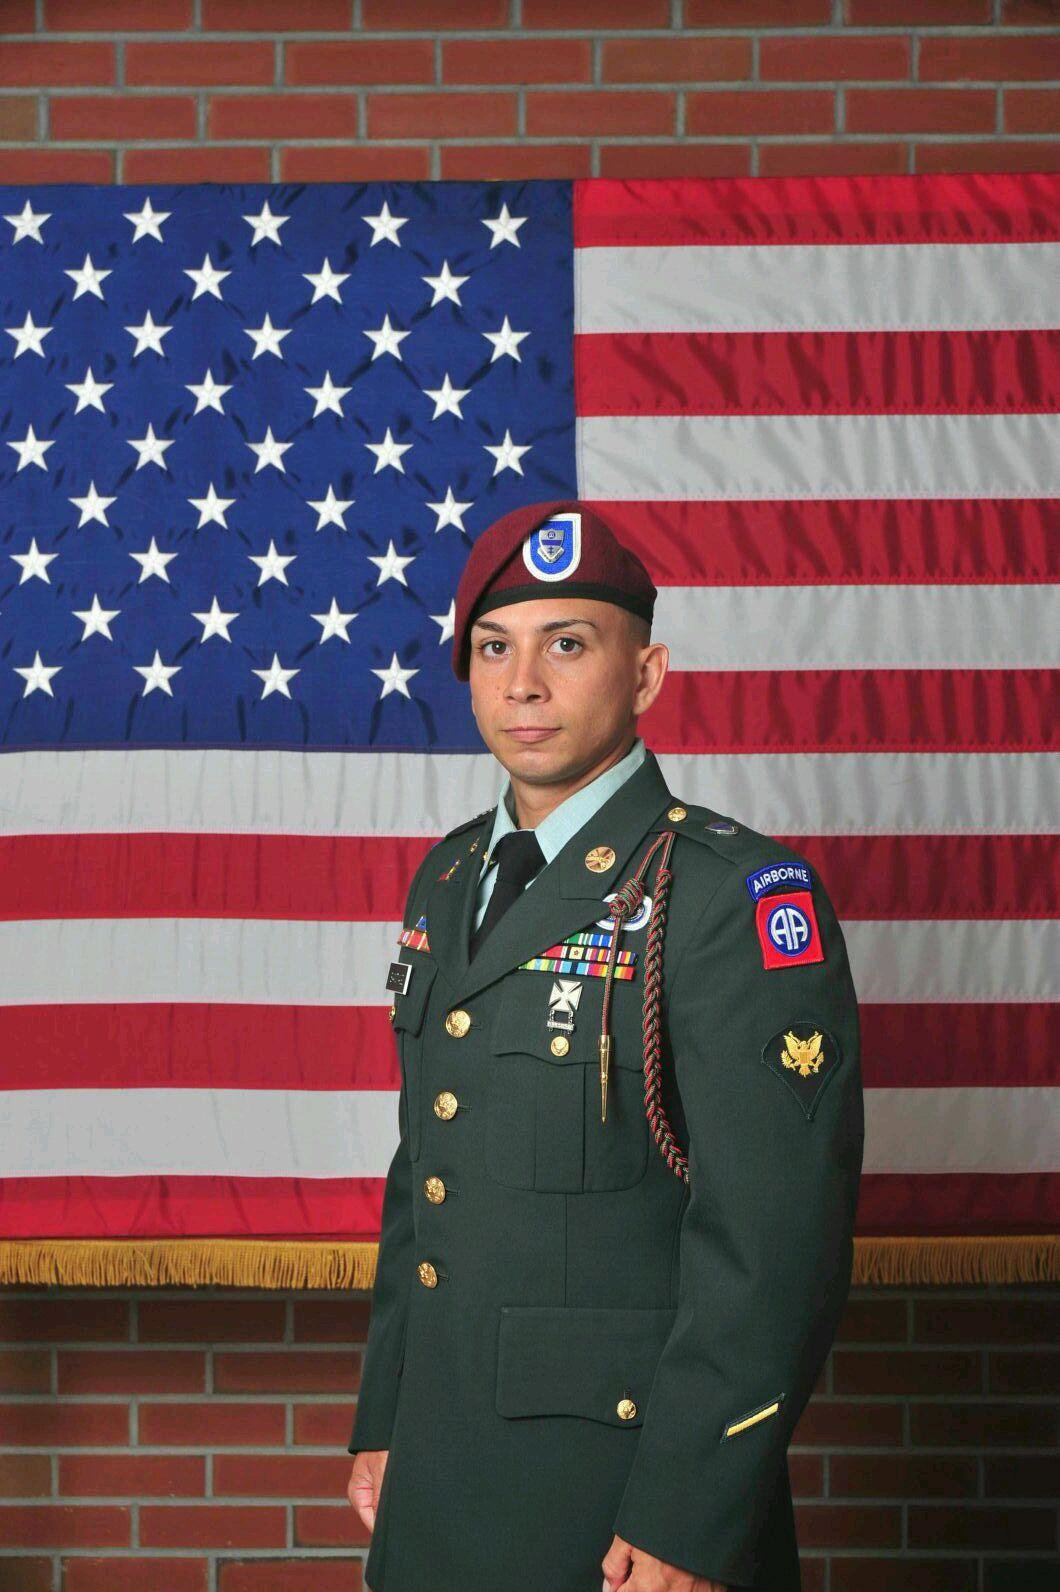 Andres Santiago Class of 2008 in his US Army Sergeants uniform standing in front of an American Flag